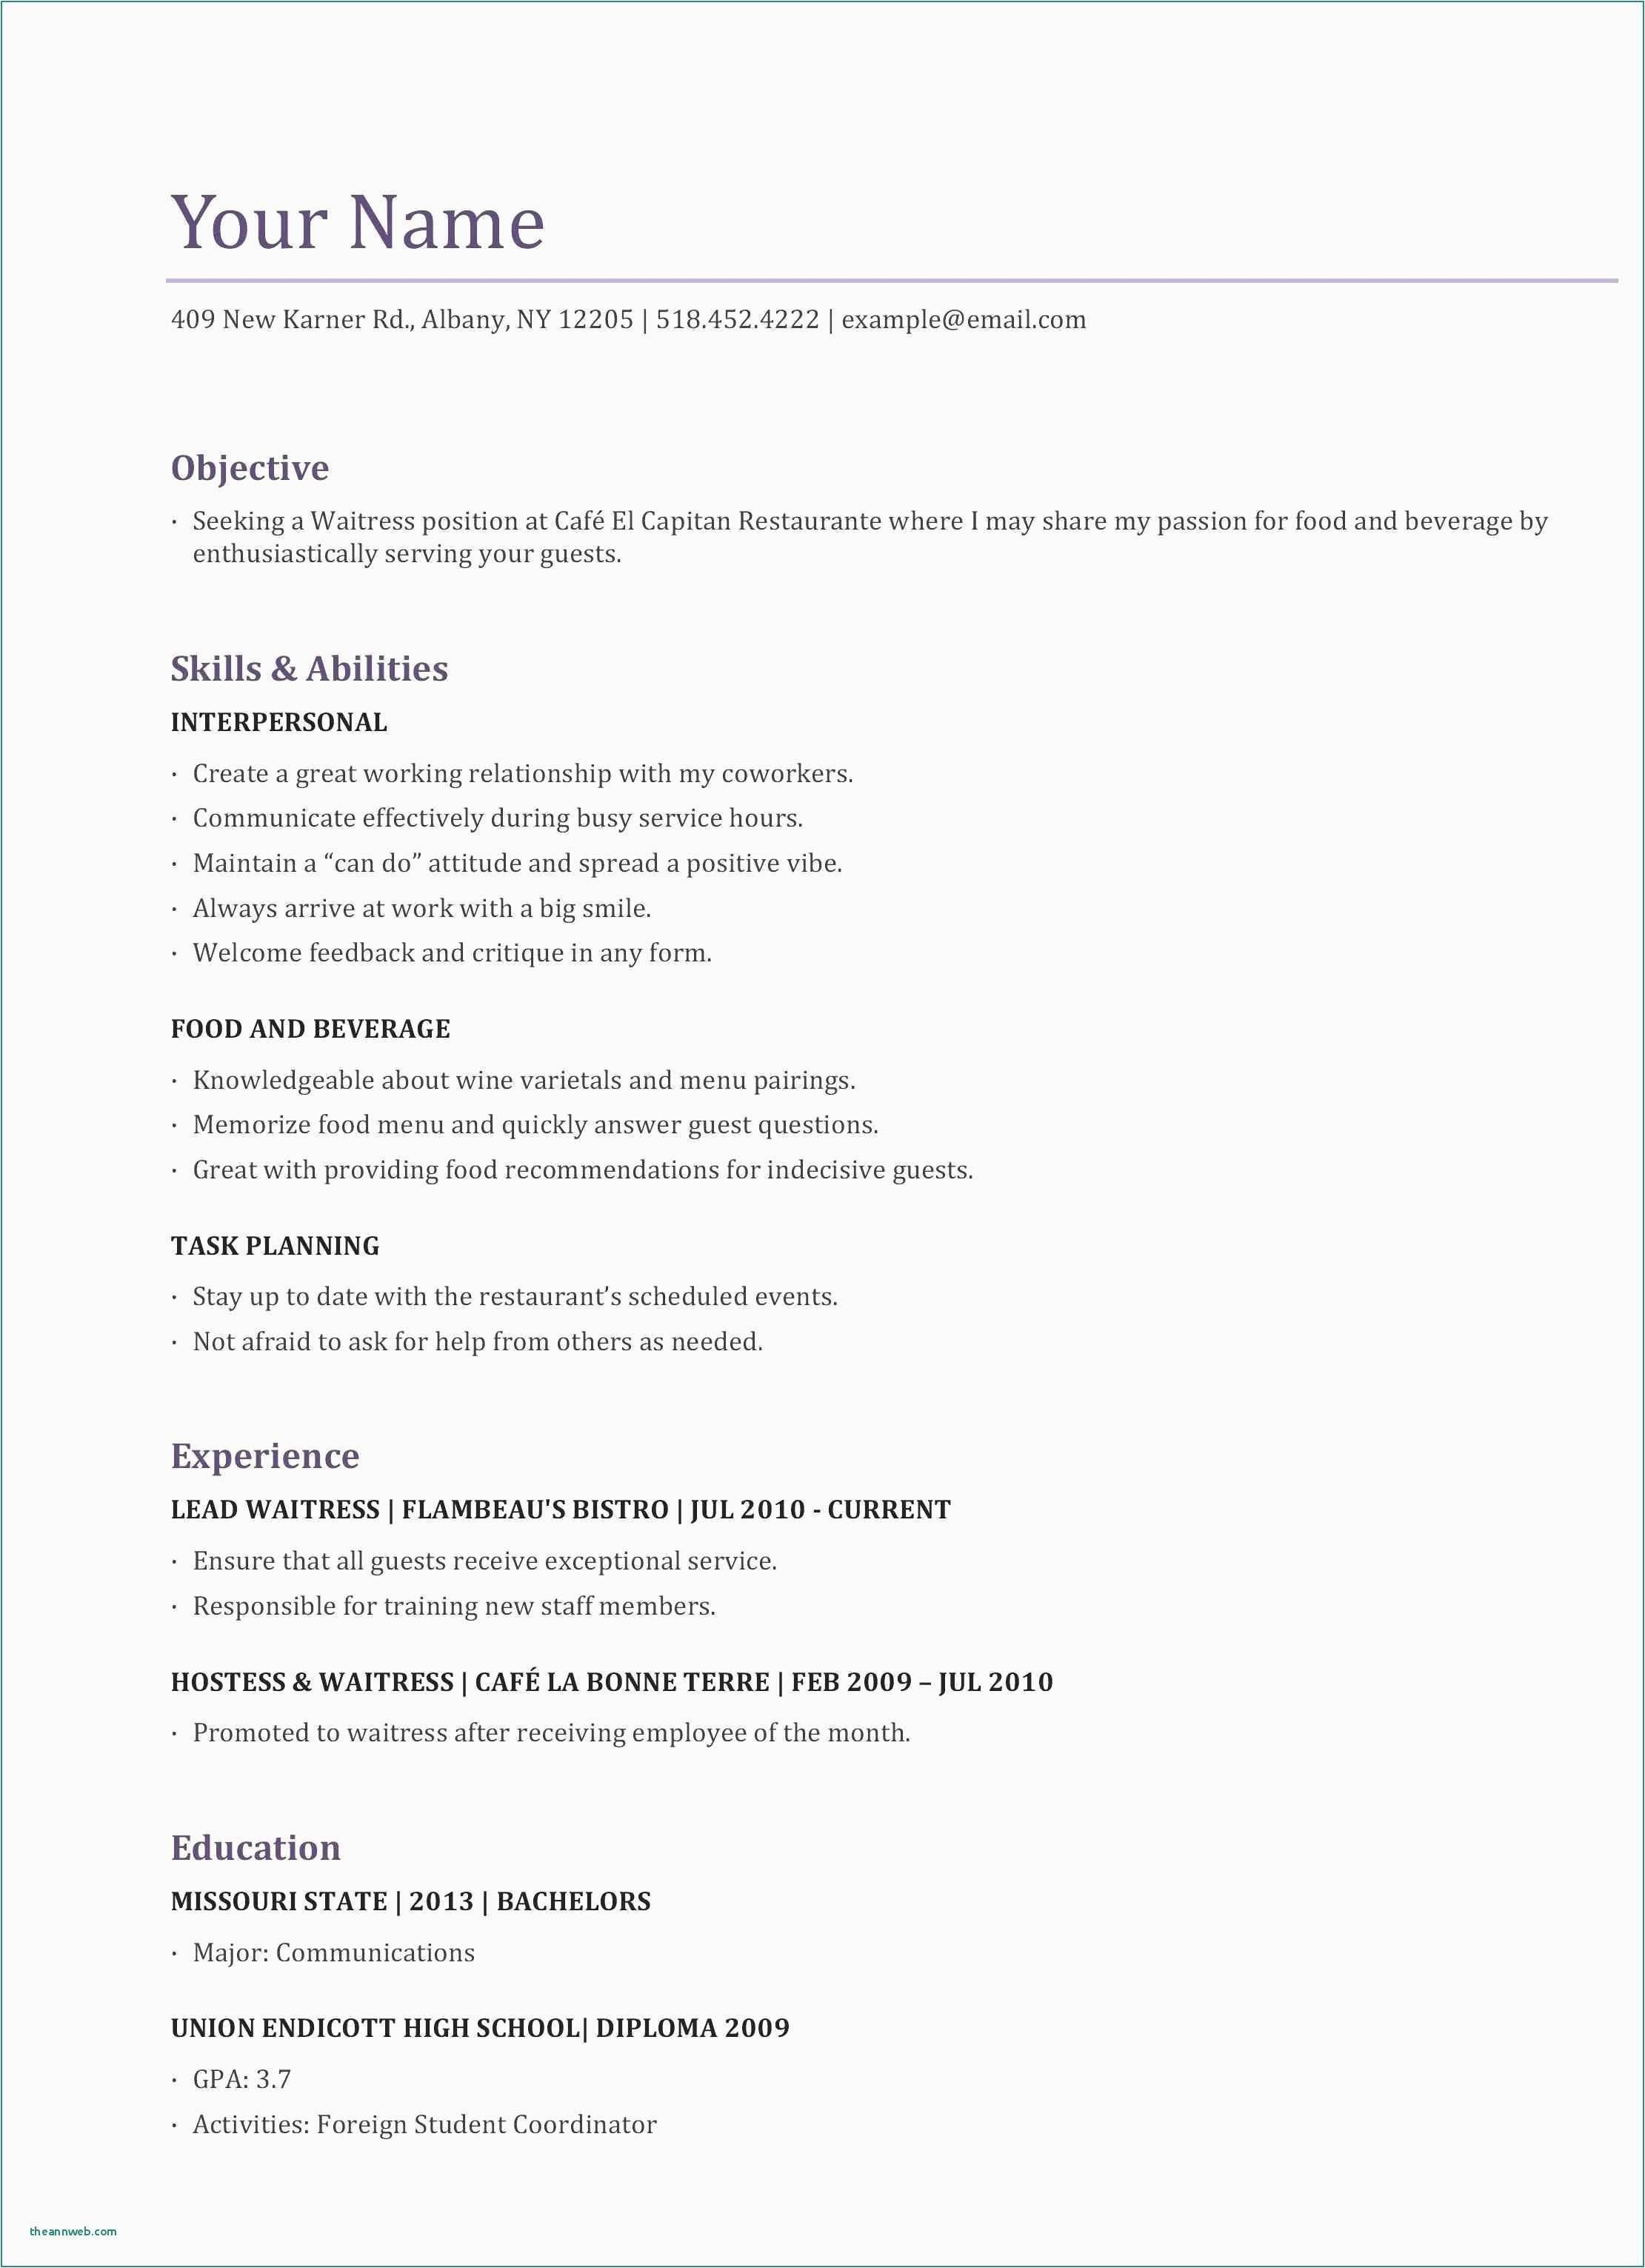 Resume after First Job Resume for First Job Examples